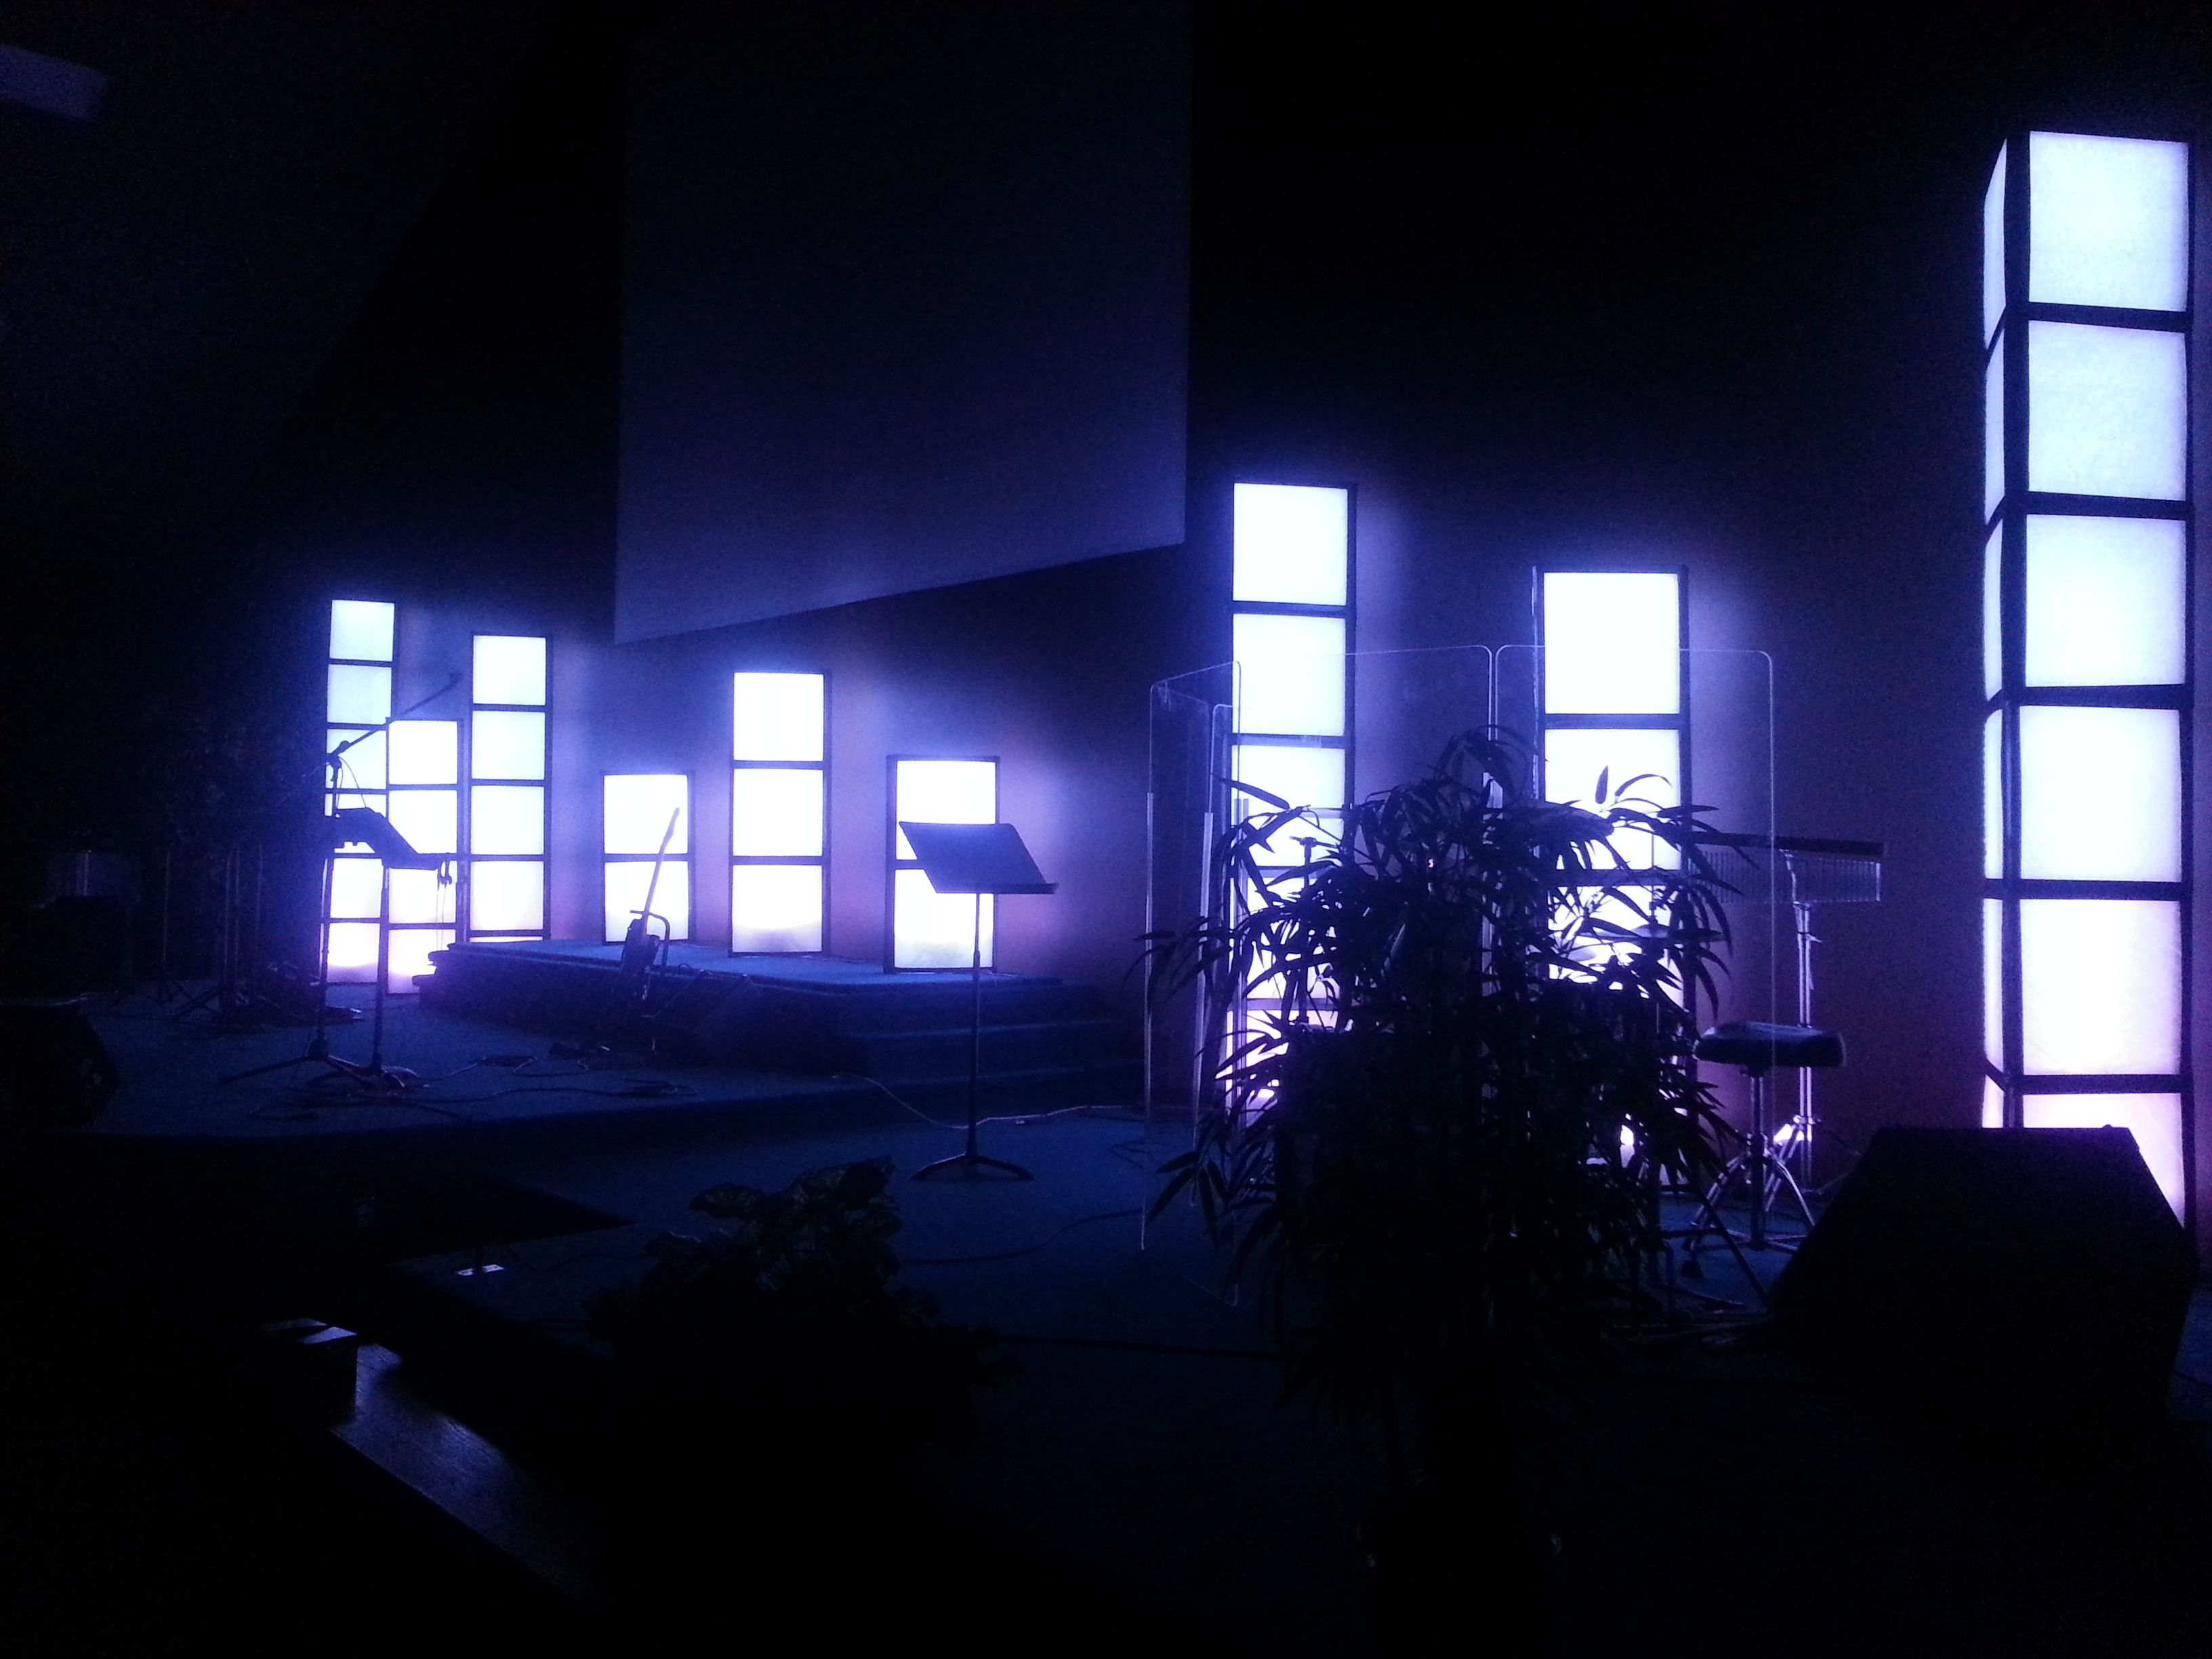 Furnace Filter Light Towers Christmas Church Stage